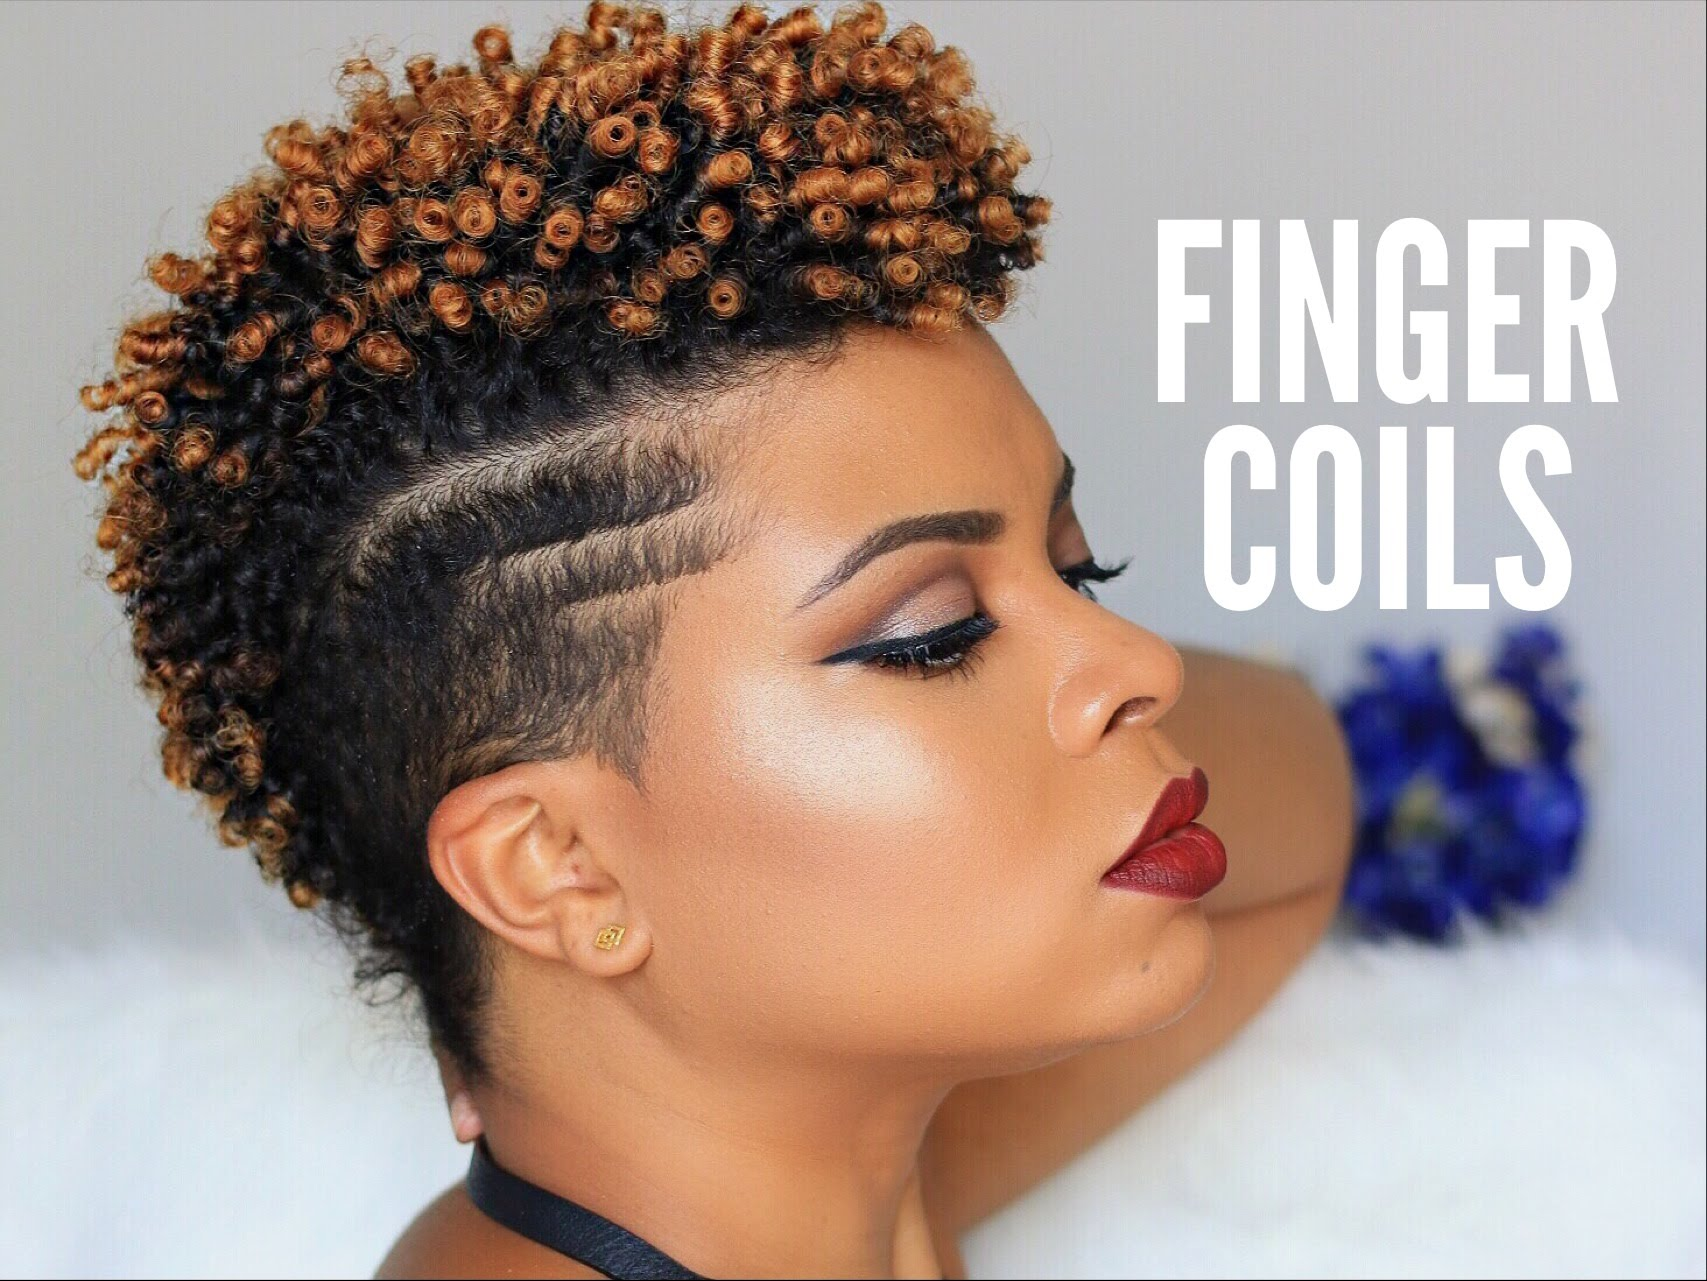 What Are Finger Coils? How To Get The Perfect Finger Coils?